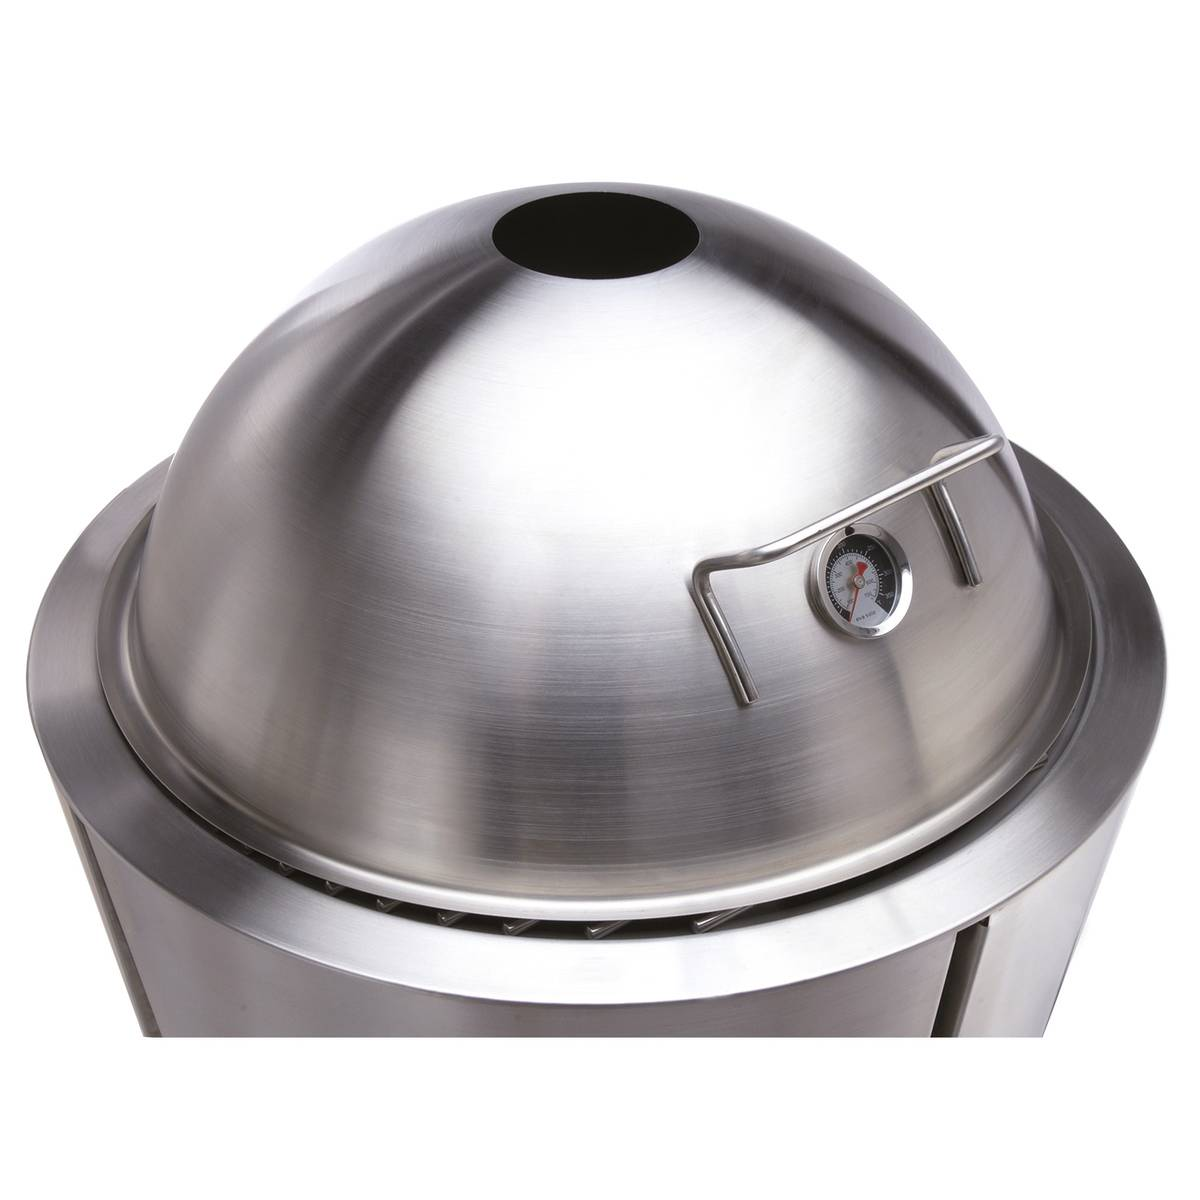 Eva Solo Grill cooking lid with thermometer, 59 cm